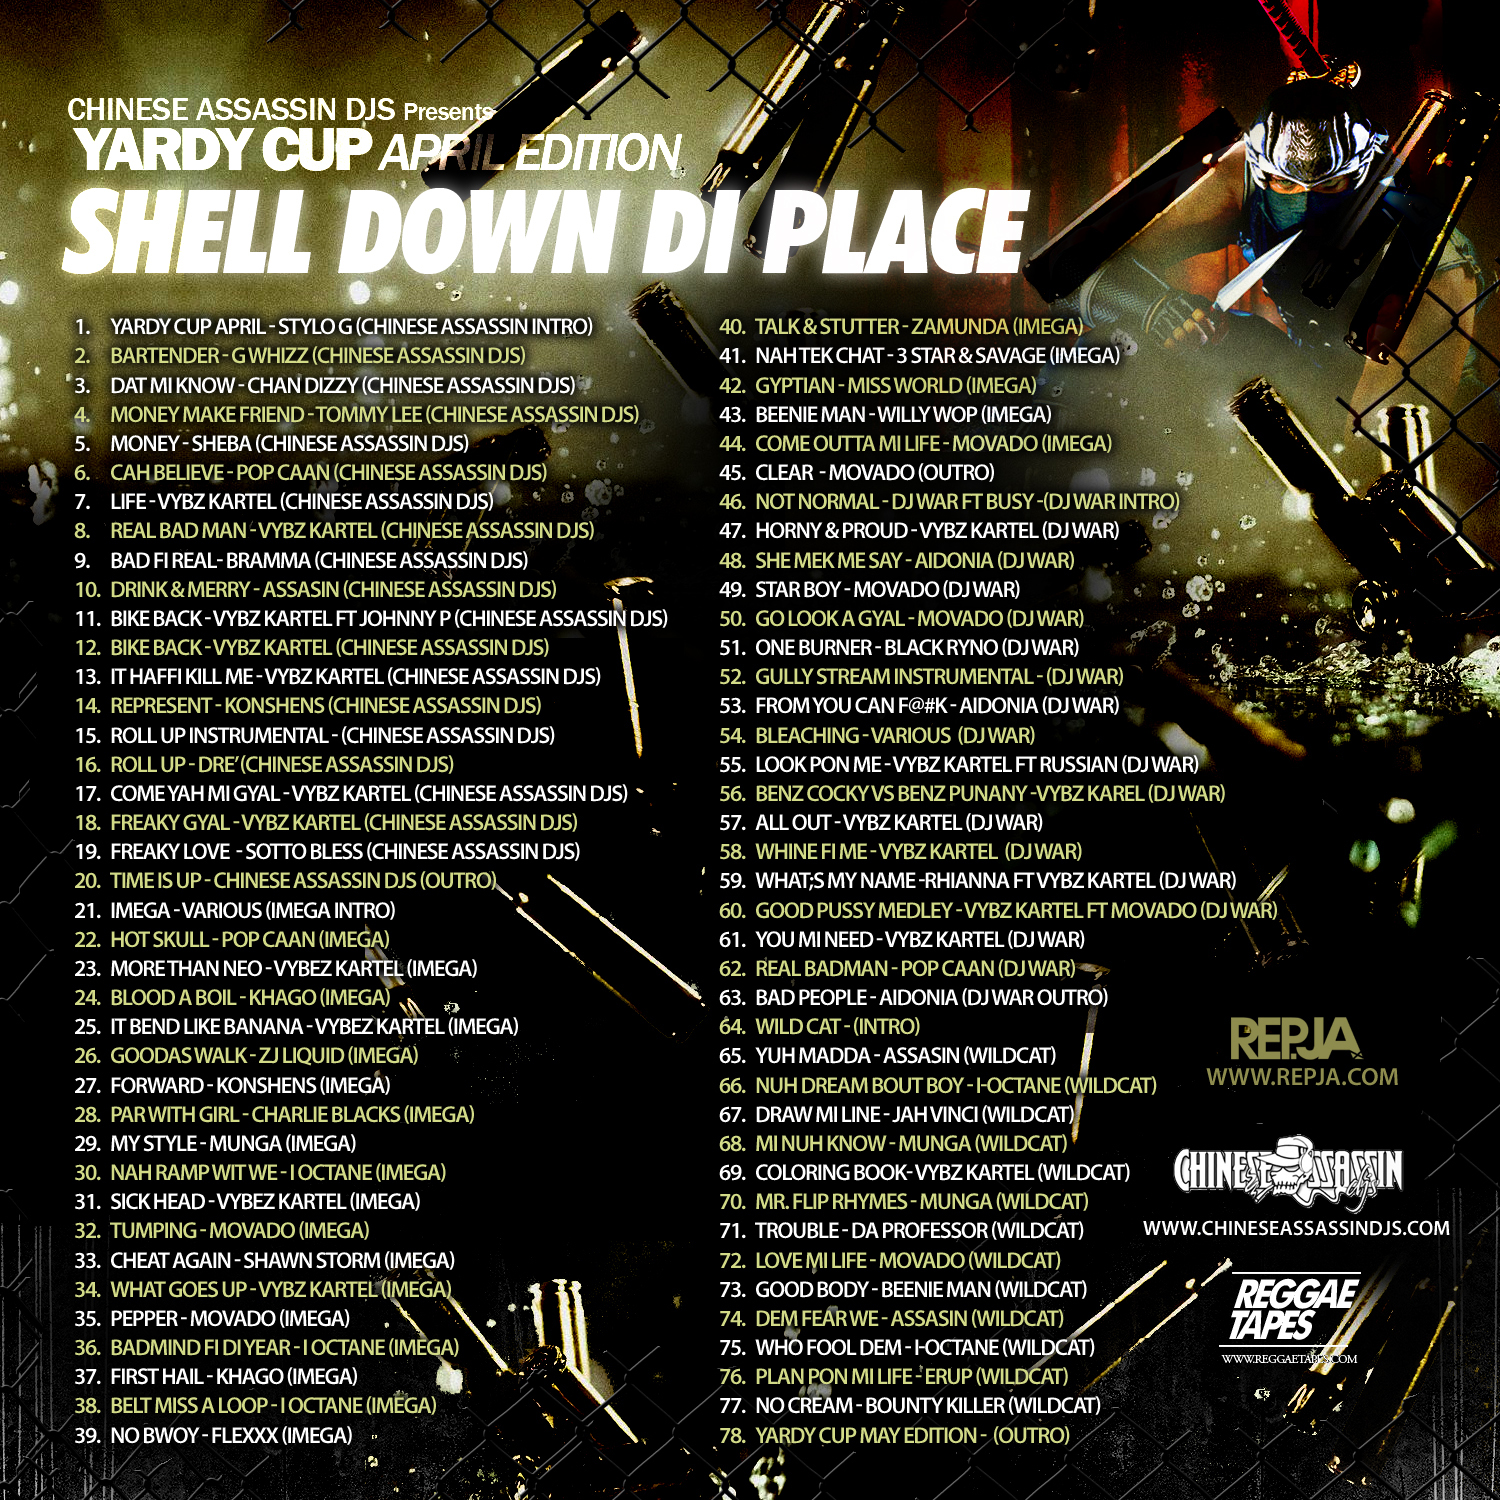 Chinese_Assassin_Djs_yardy_cup_a.jpg